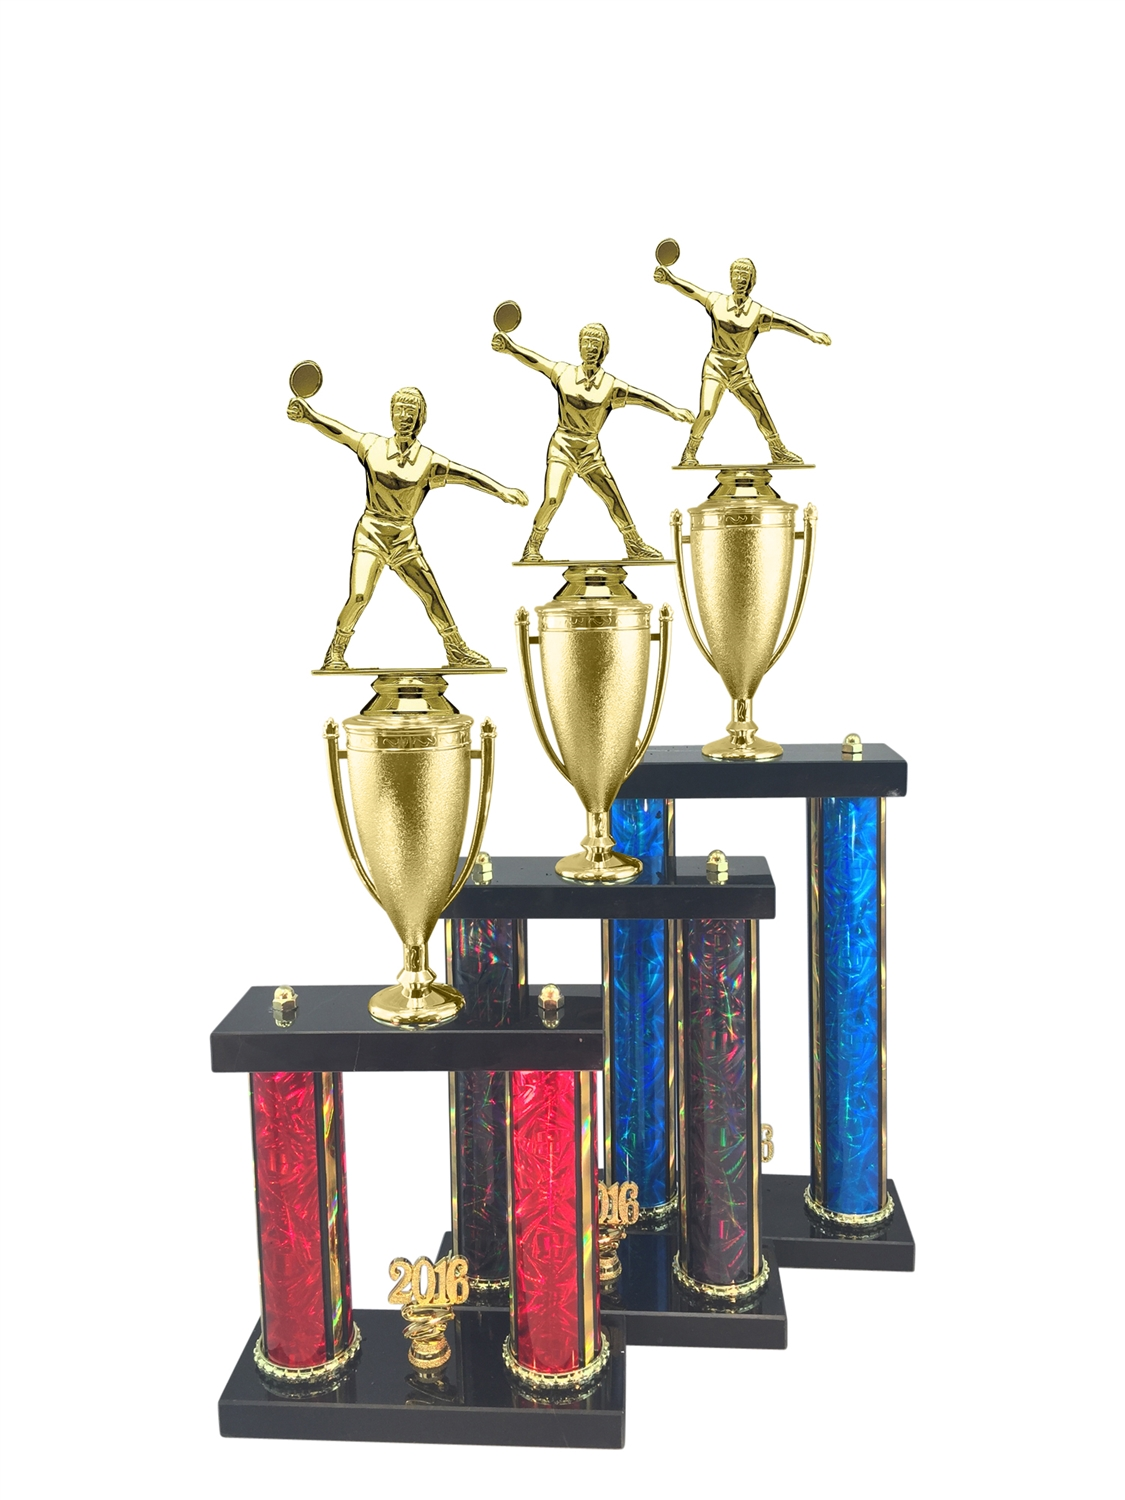 Female Ping Pong Trophy Available in 11 Color & 3 Size Options